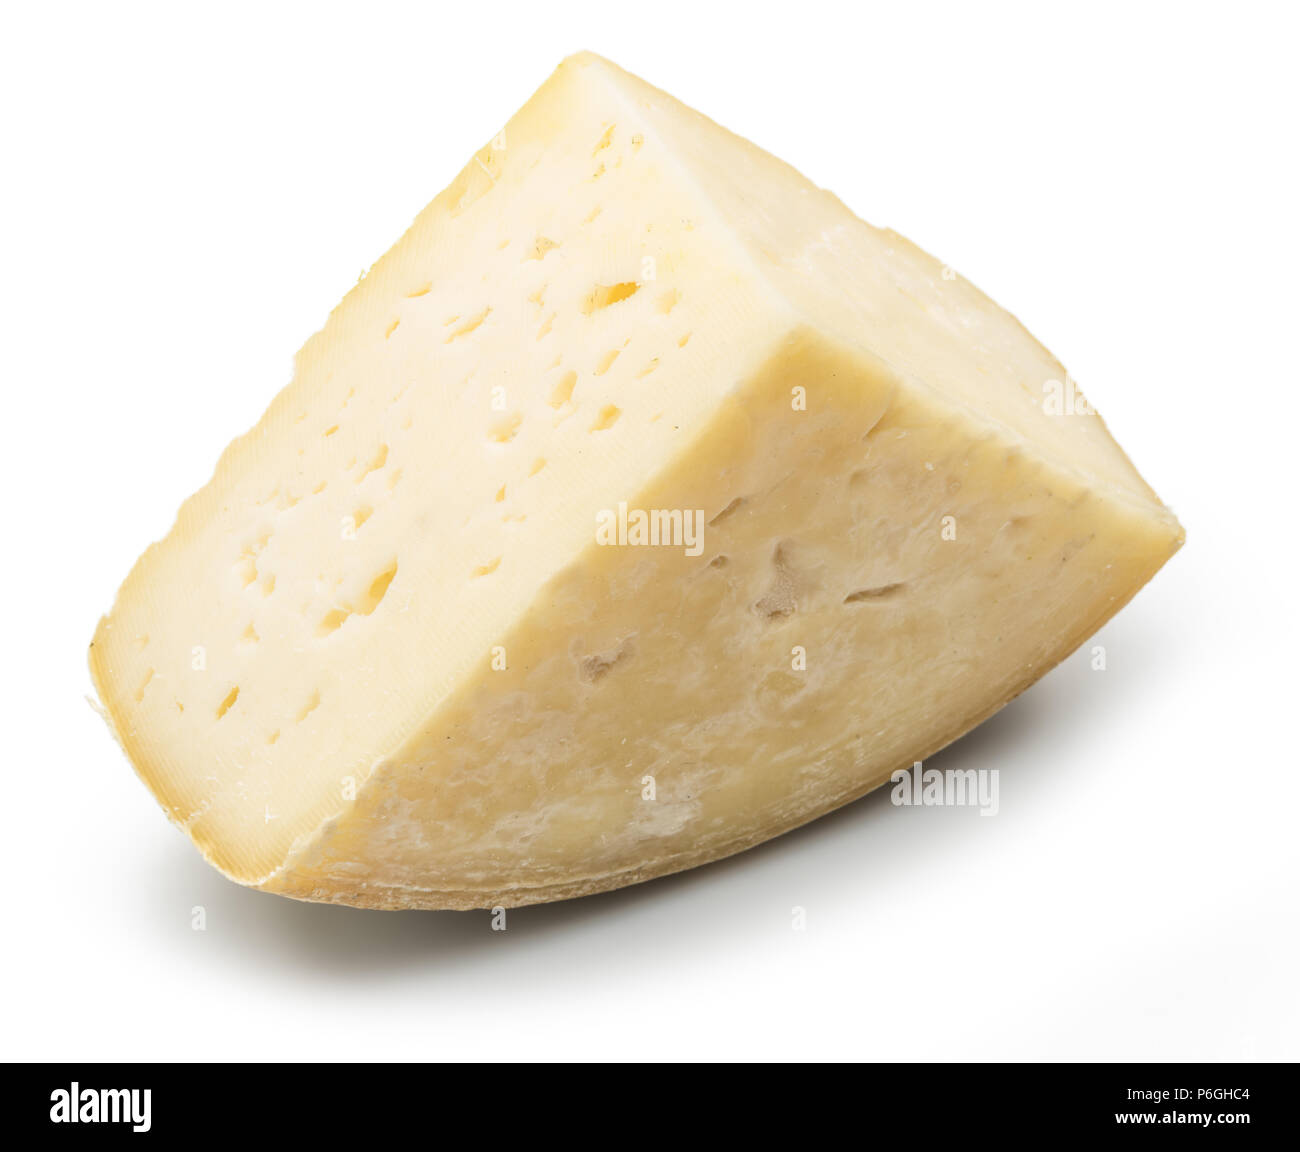 Piece of homemade cheese on the white background. Stock Photo